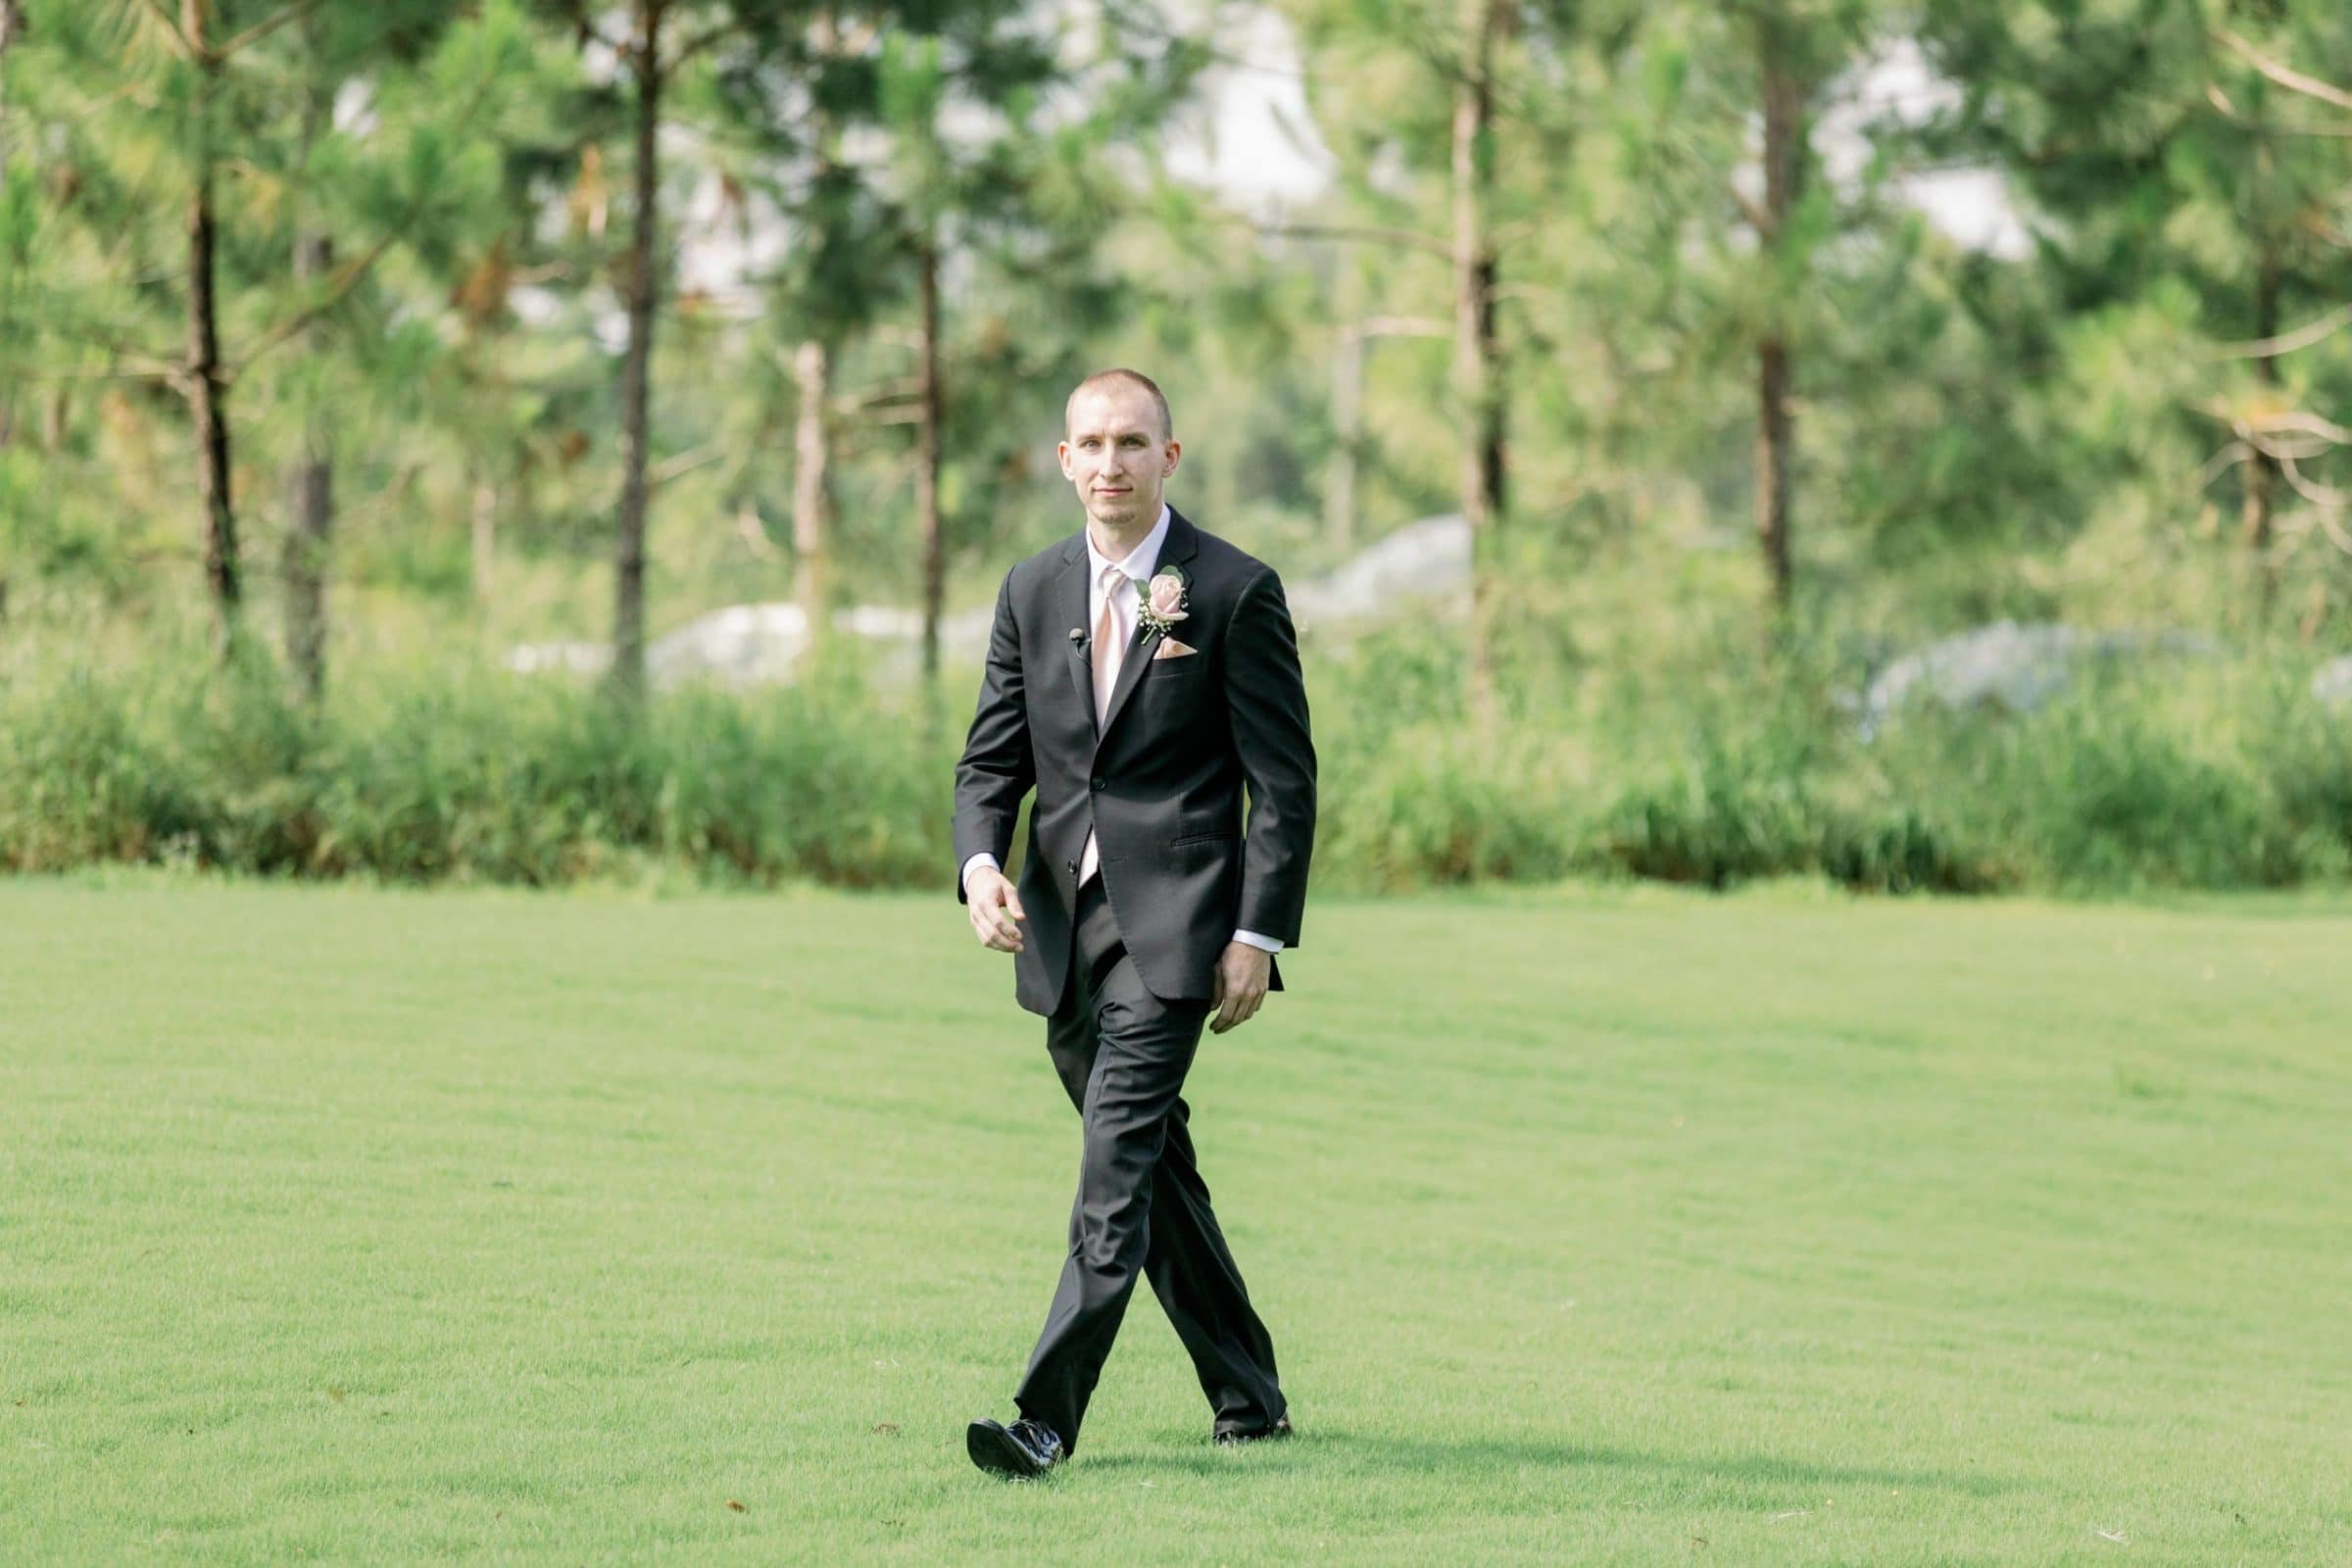 Groom walking in the grass for lakeside wedding ceremony